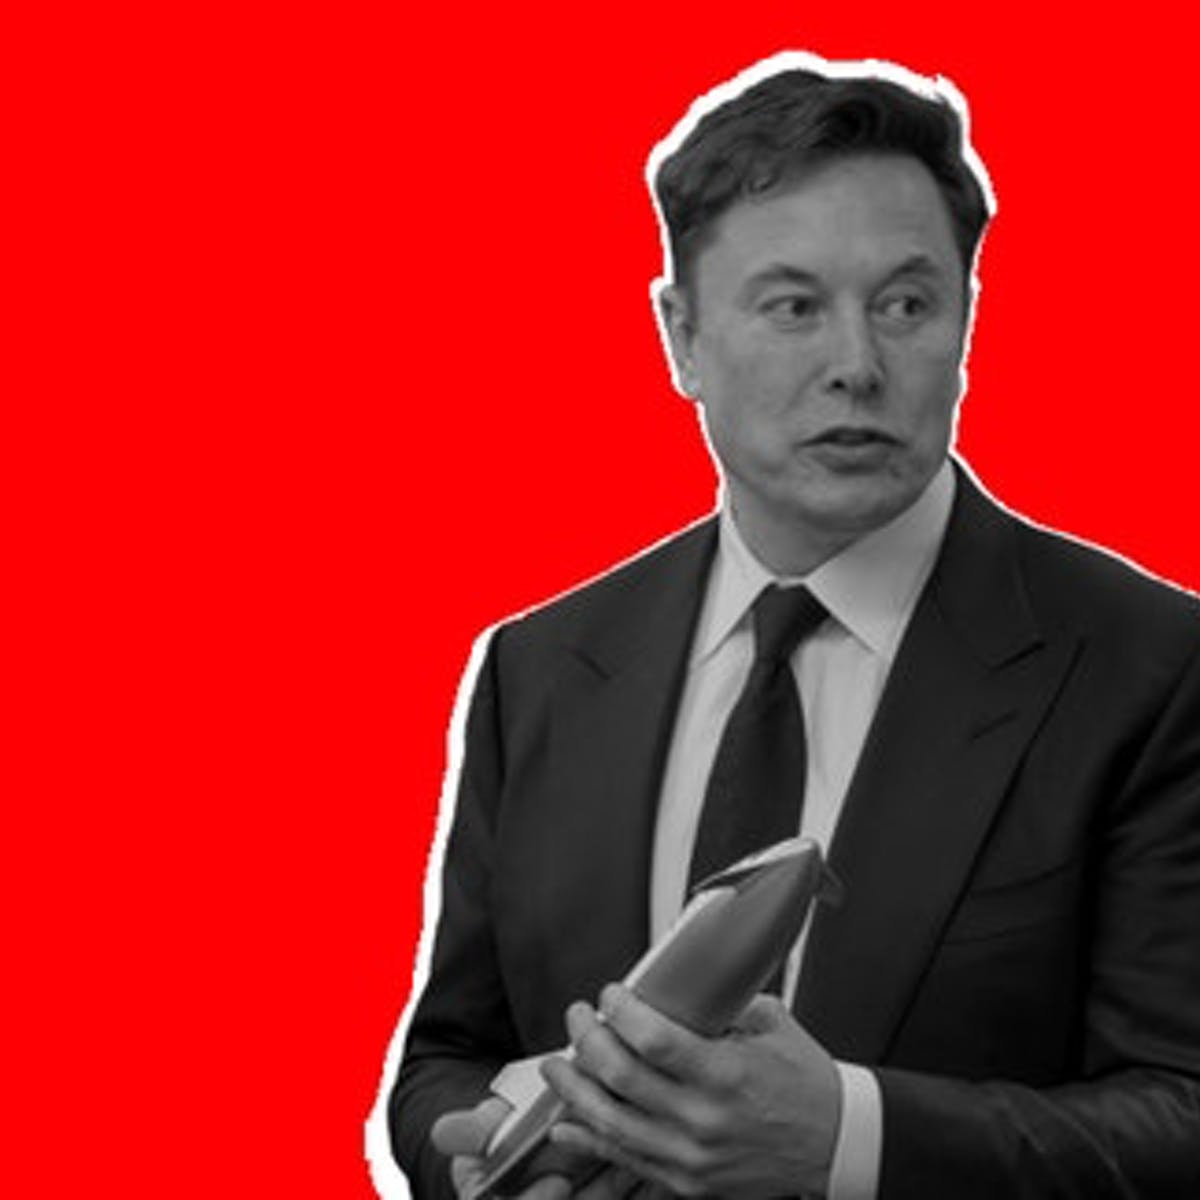 Musk Reads: Tesla Insurance Has Finally Arrived